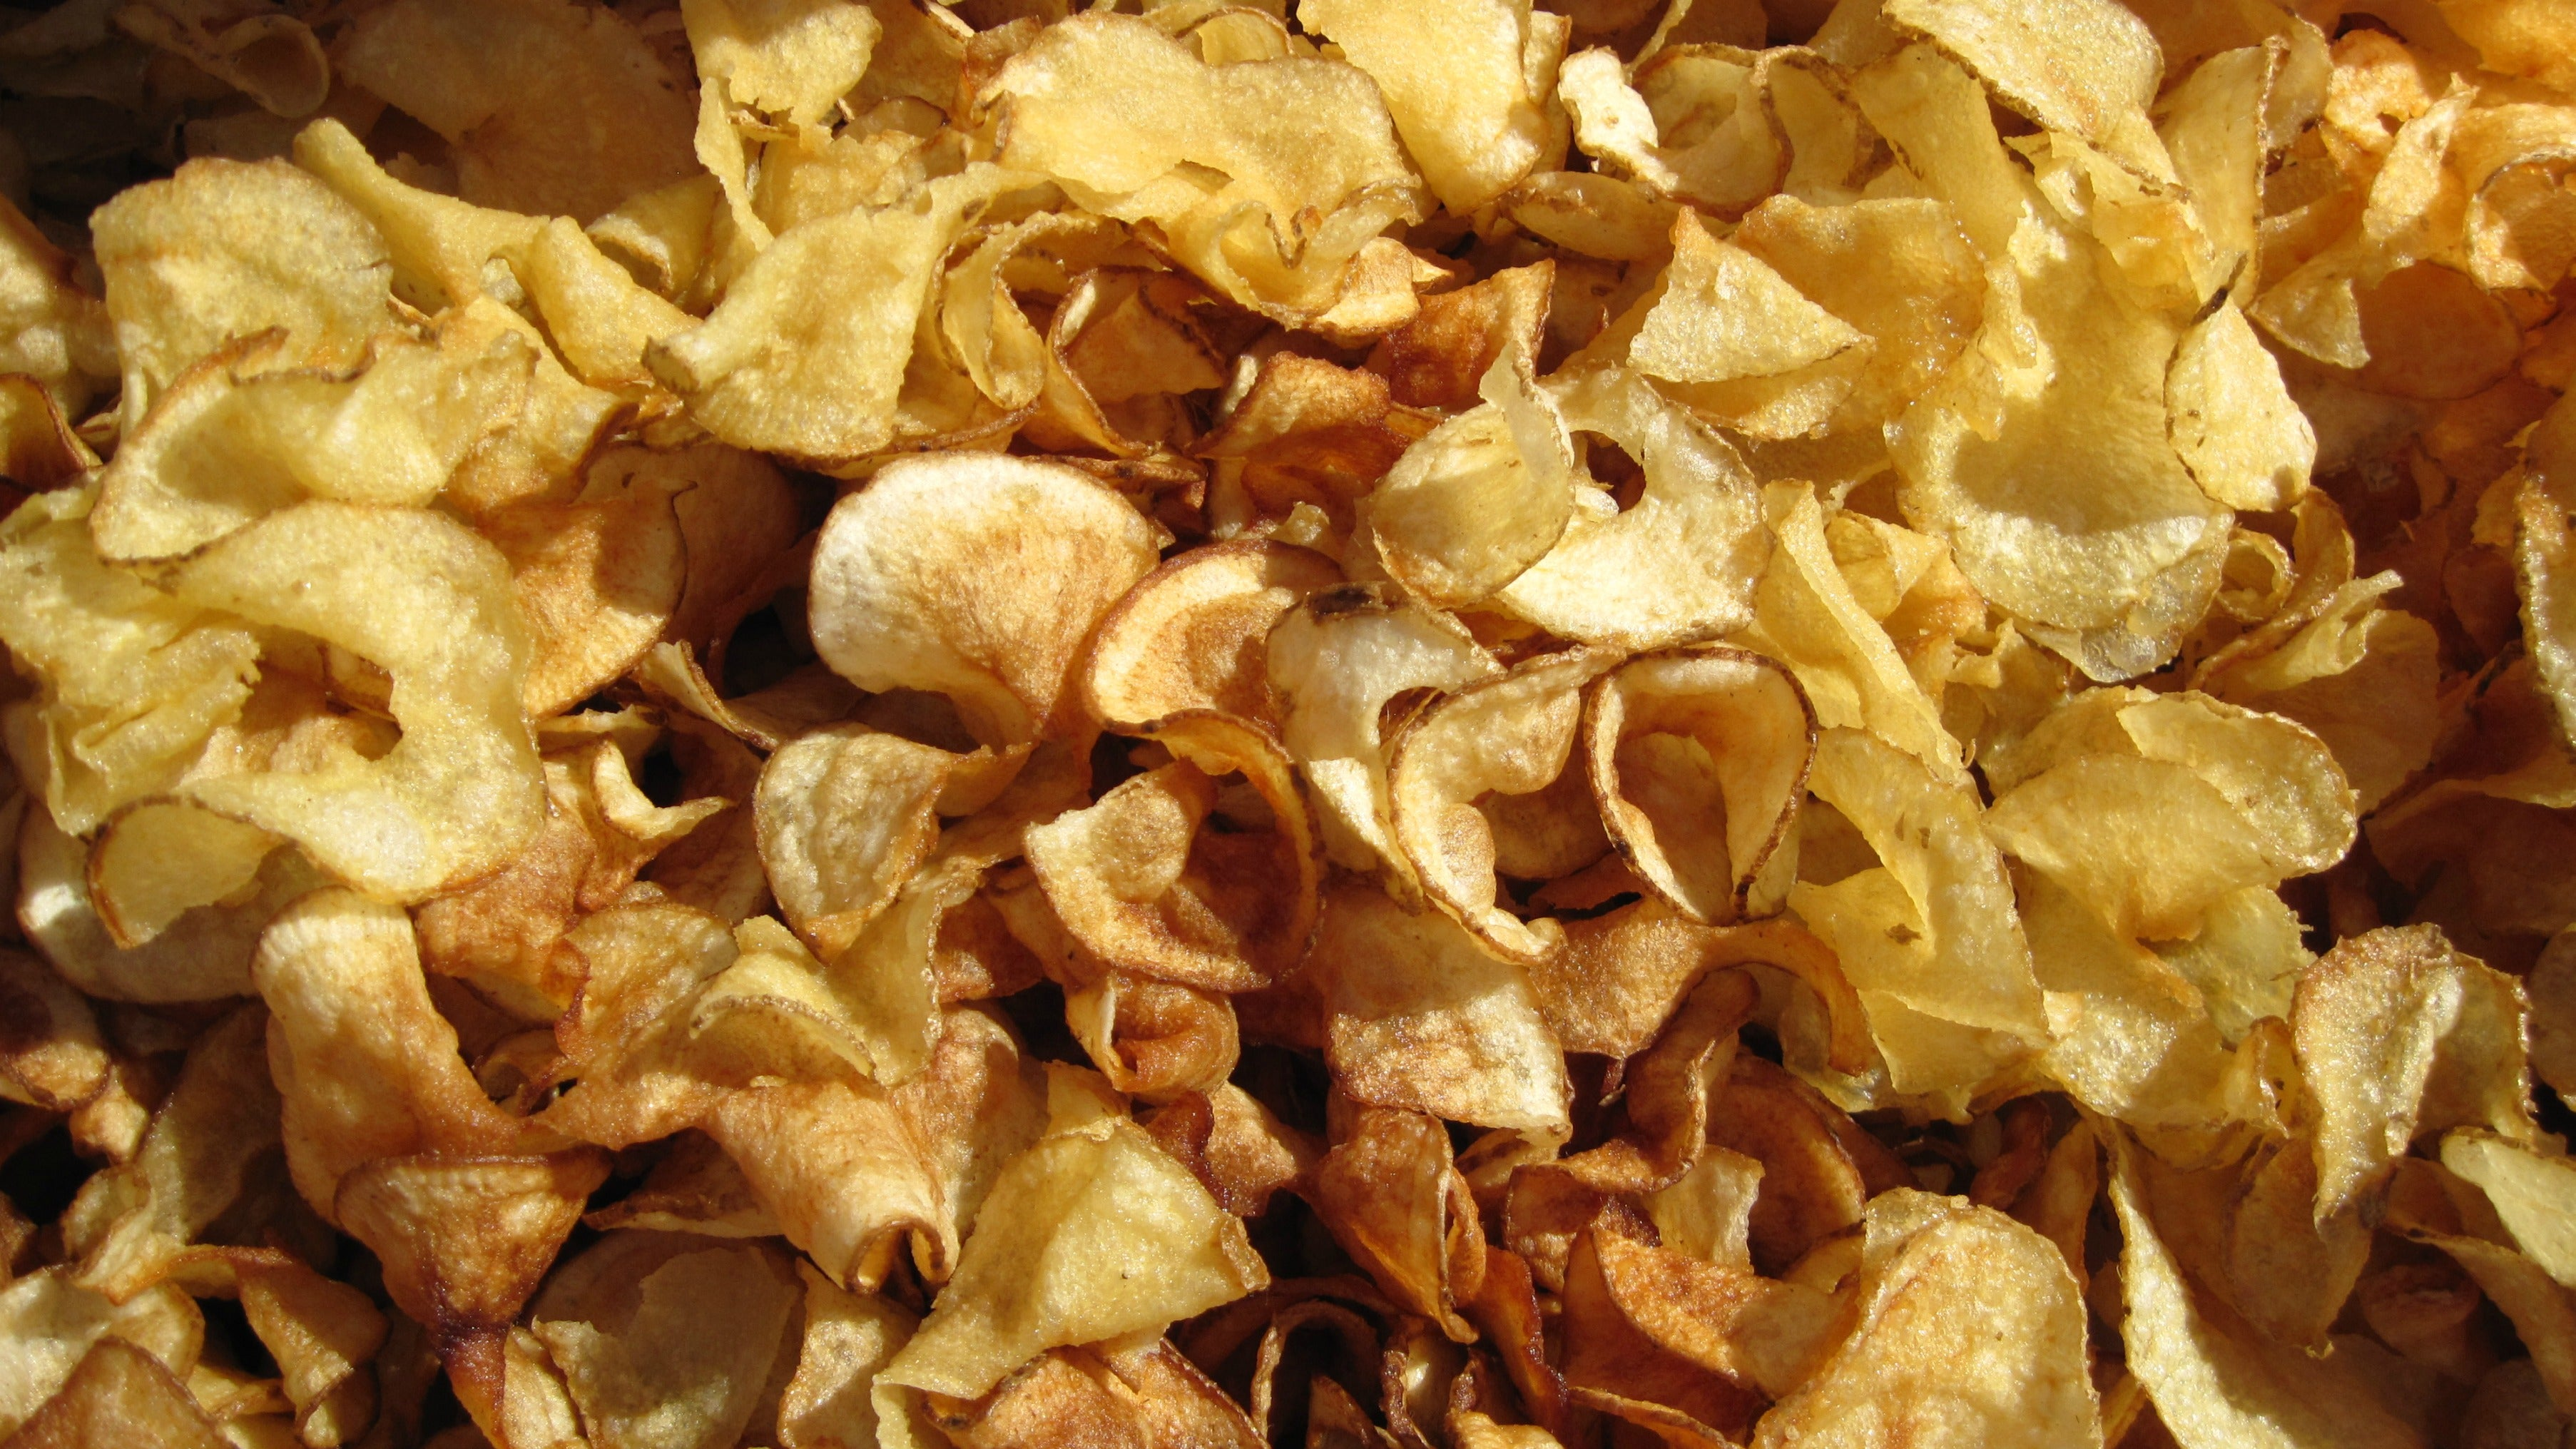 Make Your Own Salt and Vinegar Chips with Homemade Sodium Acetate